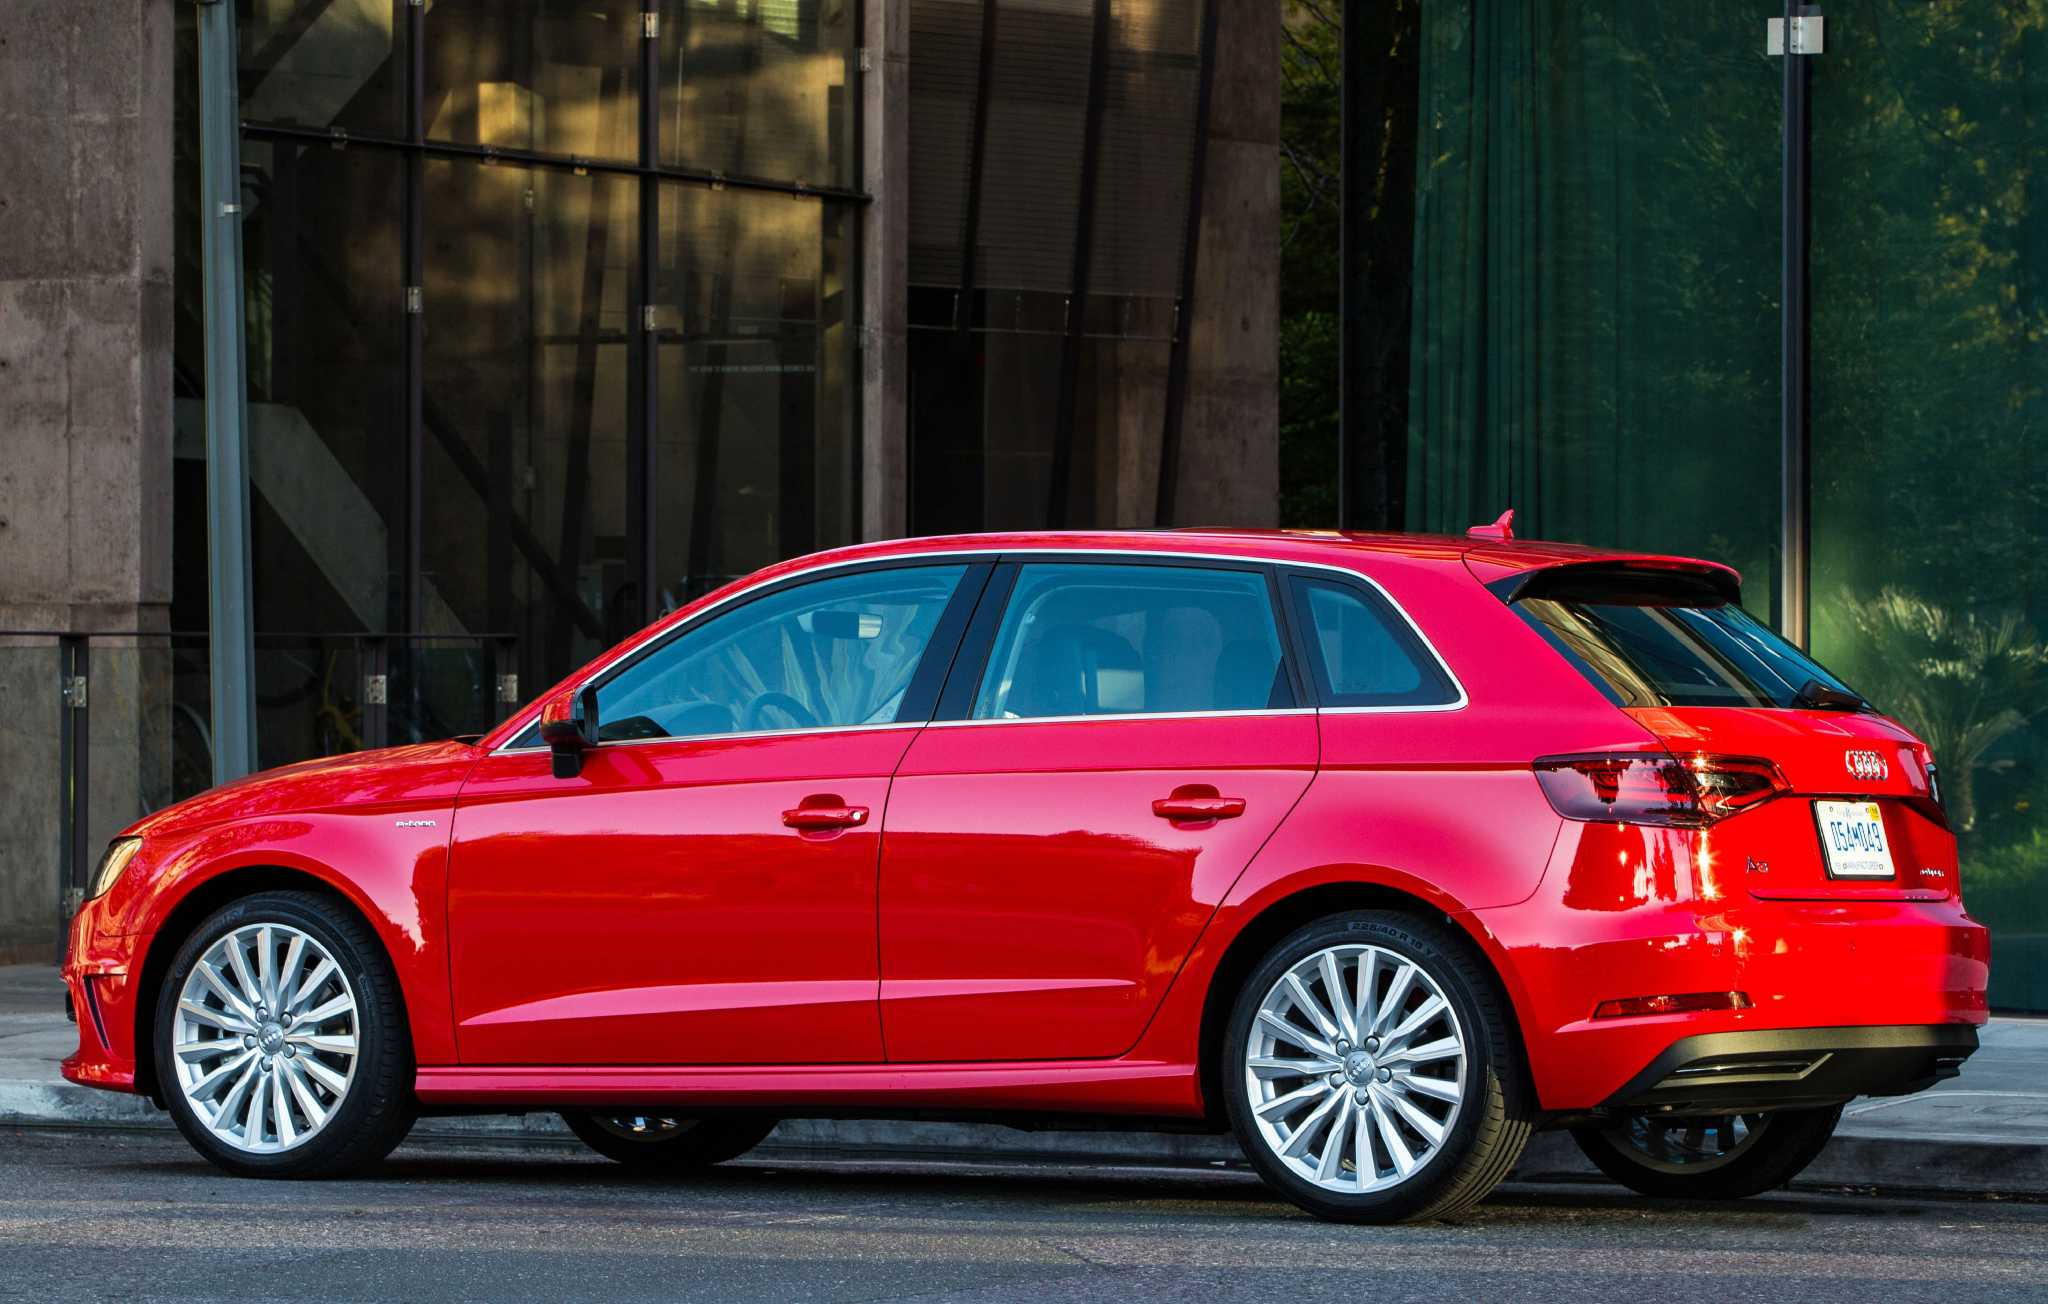 Audi's A3 Sportback e-tron model is the brand's first plug-in hybrid for U.S.